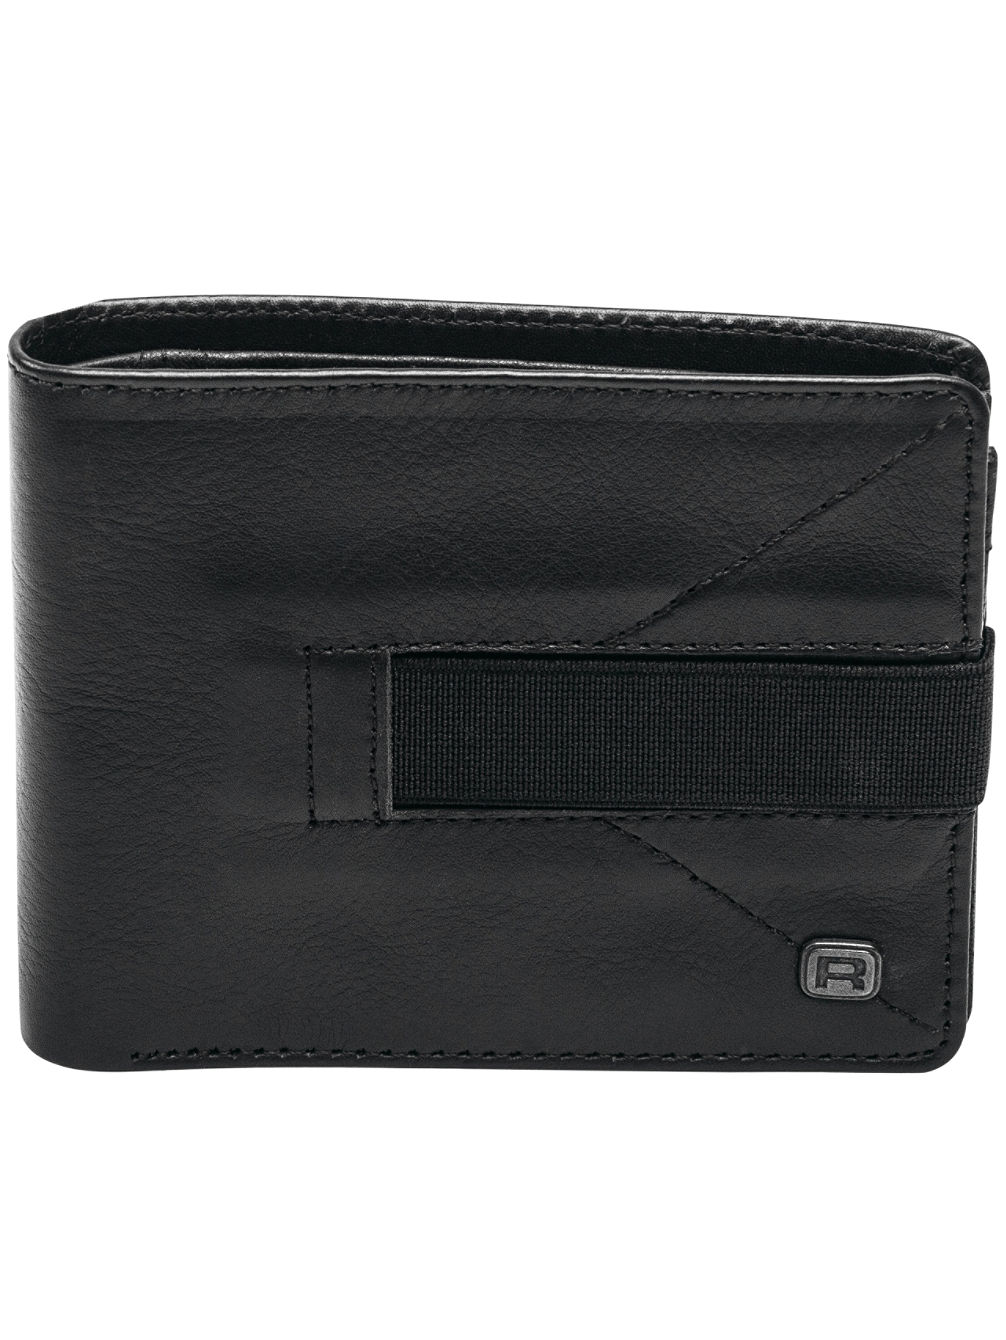 Strap Leather Wallet